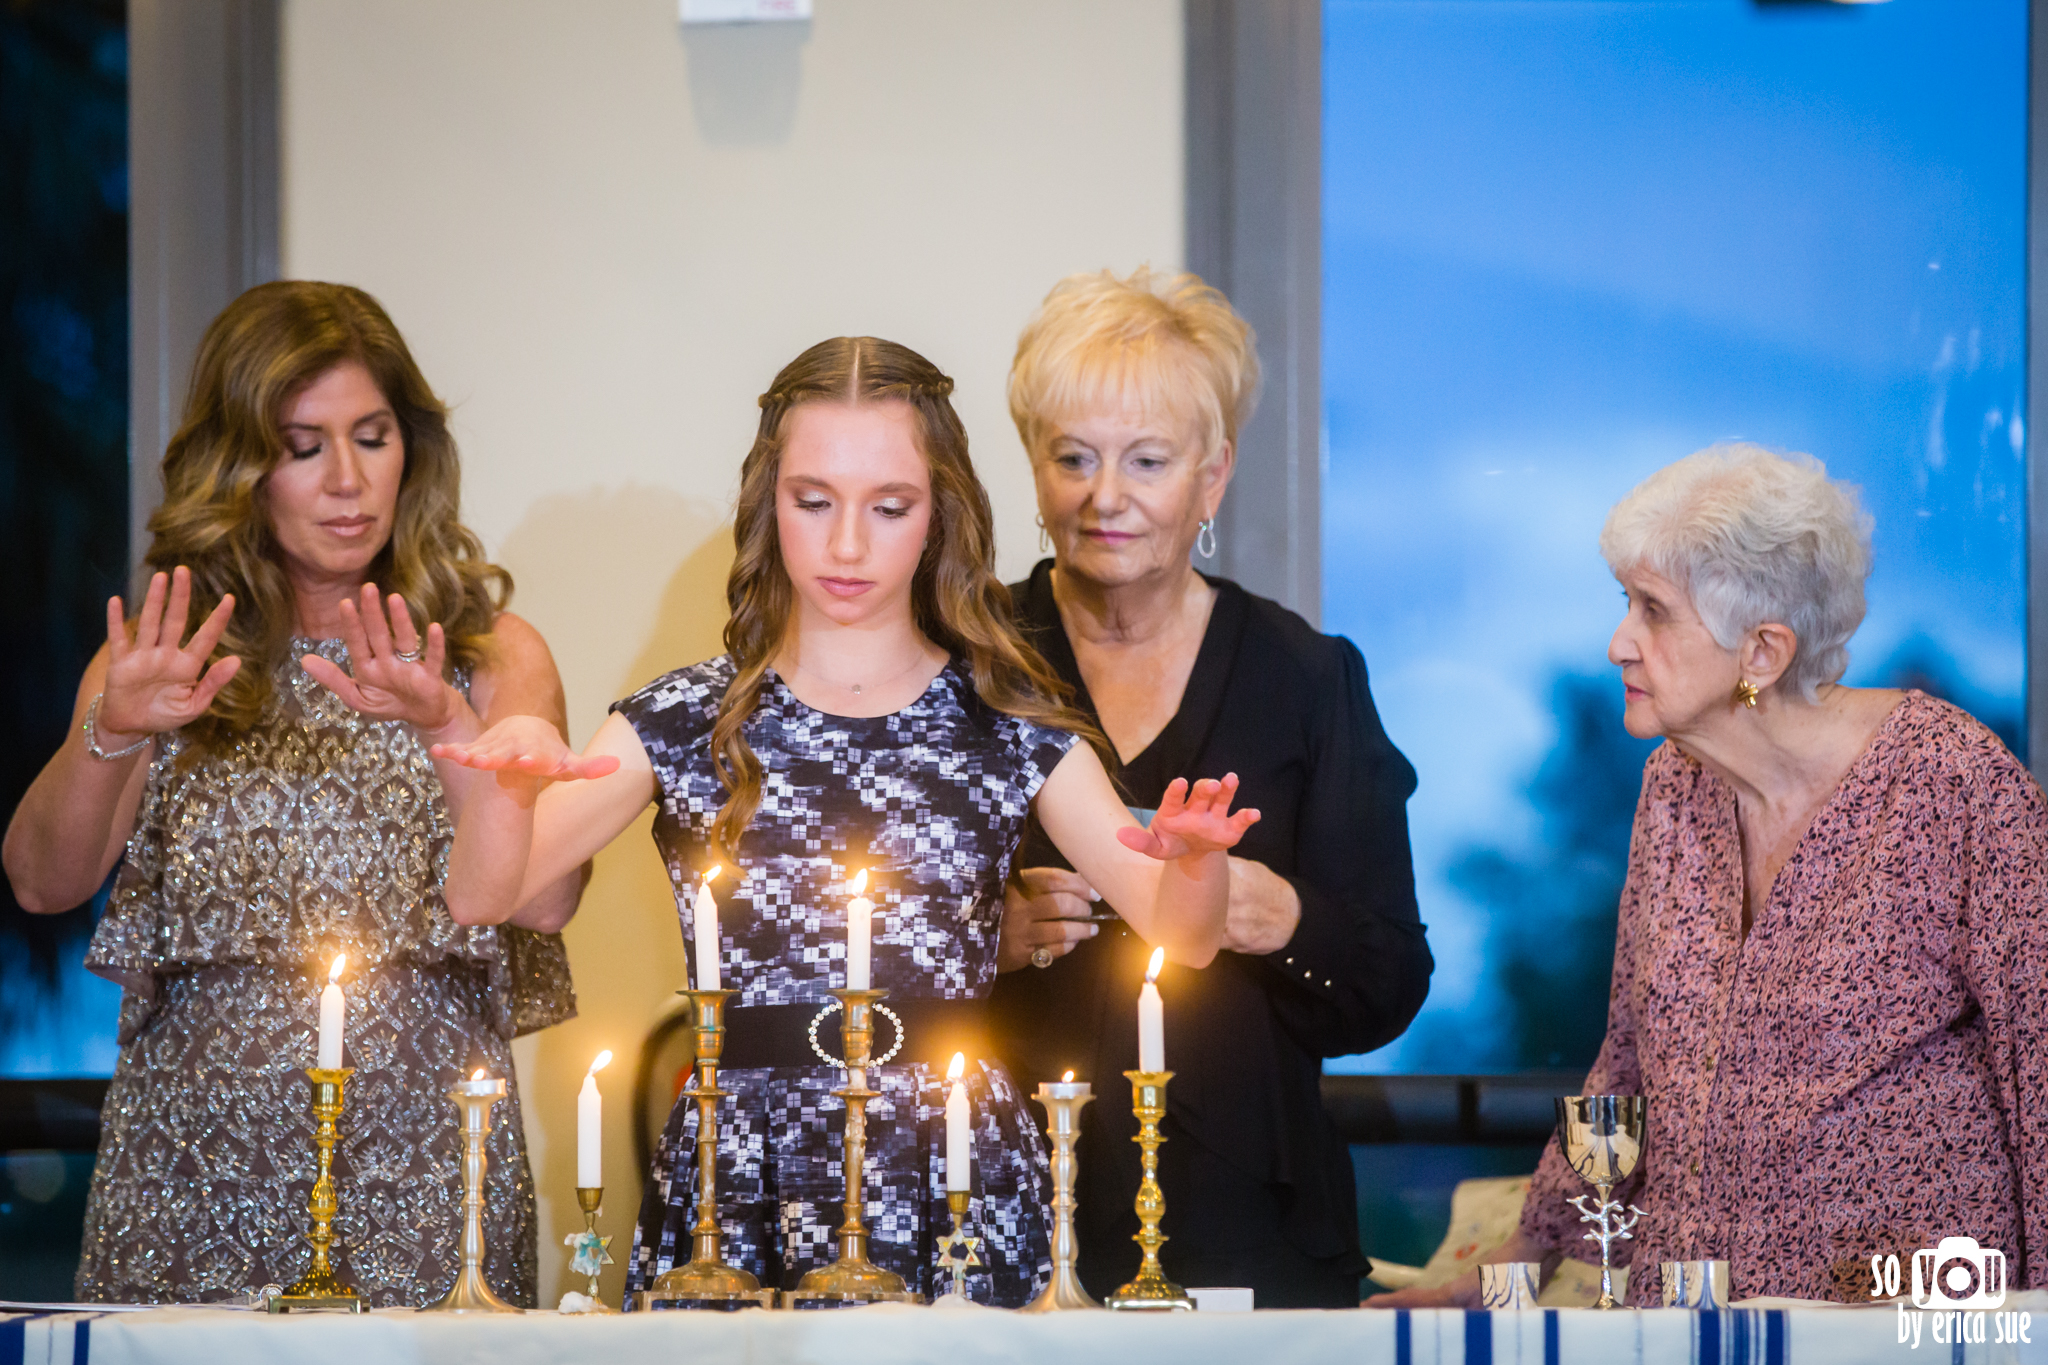 parkland-fl-mitzvah-photography-so-you-by-erica-sue-9764.jpg